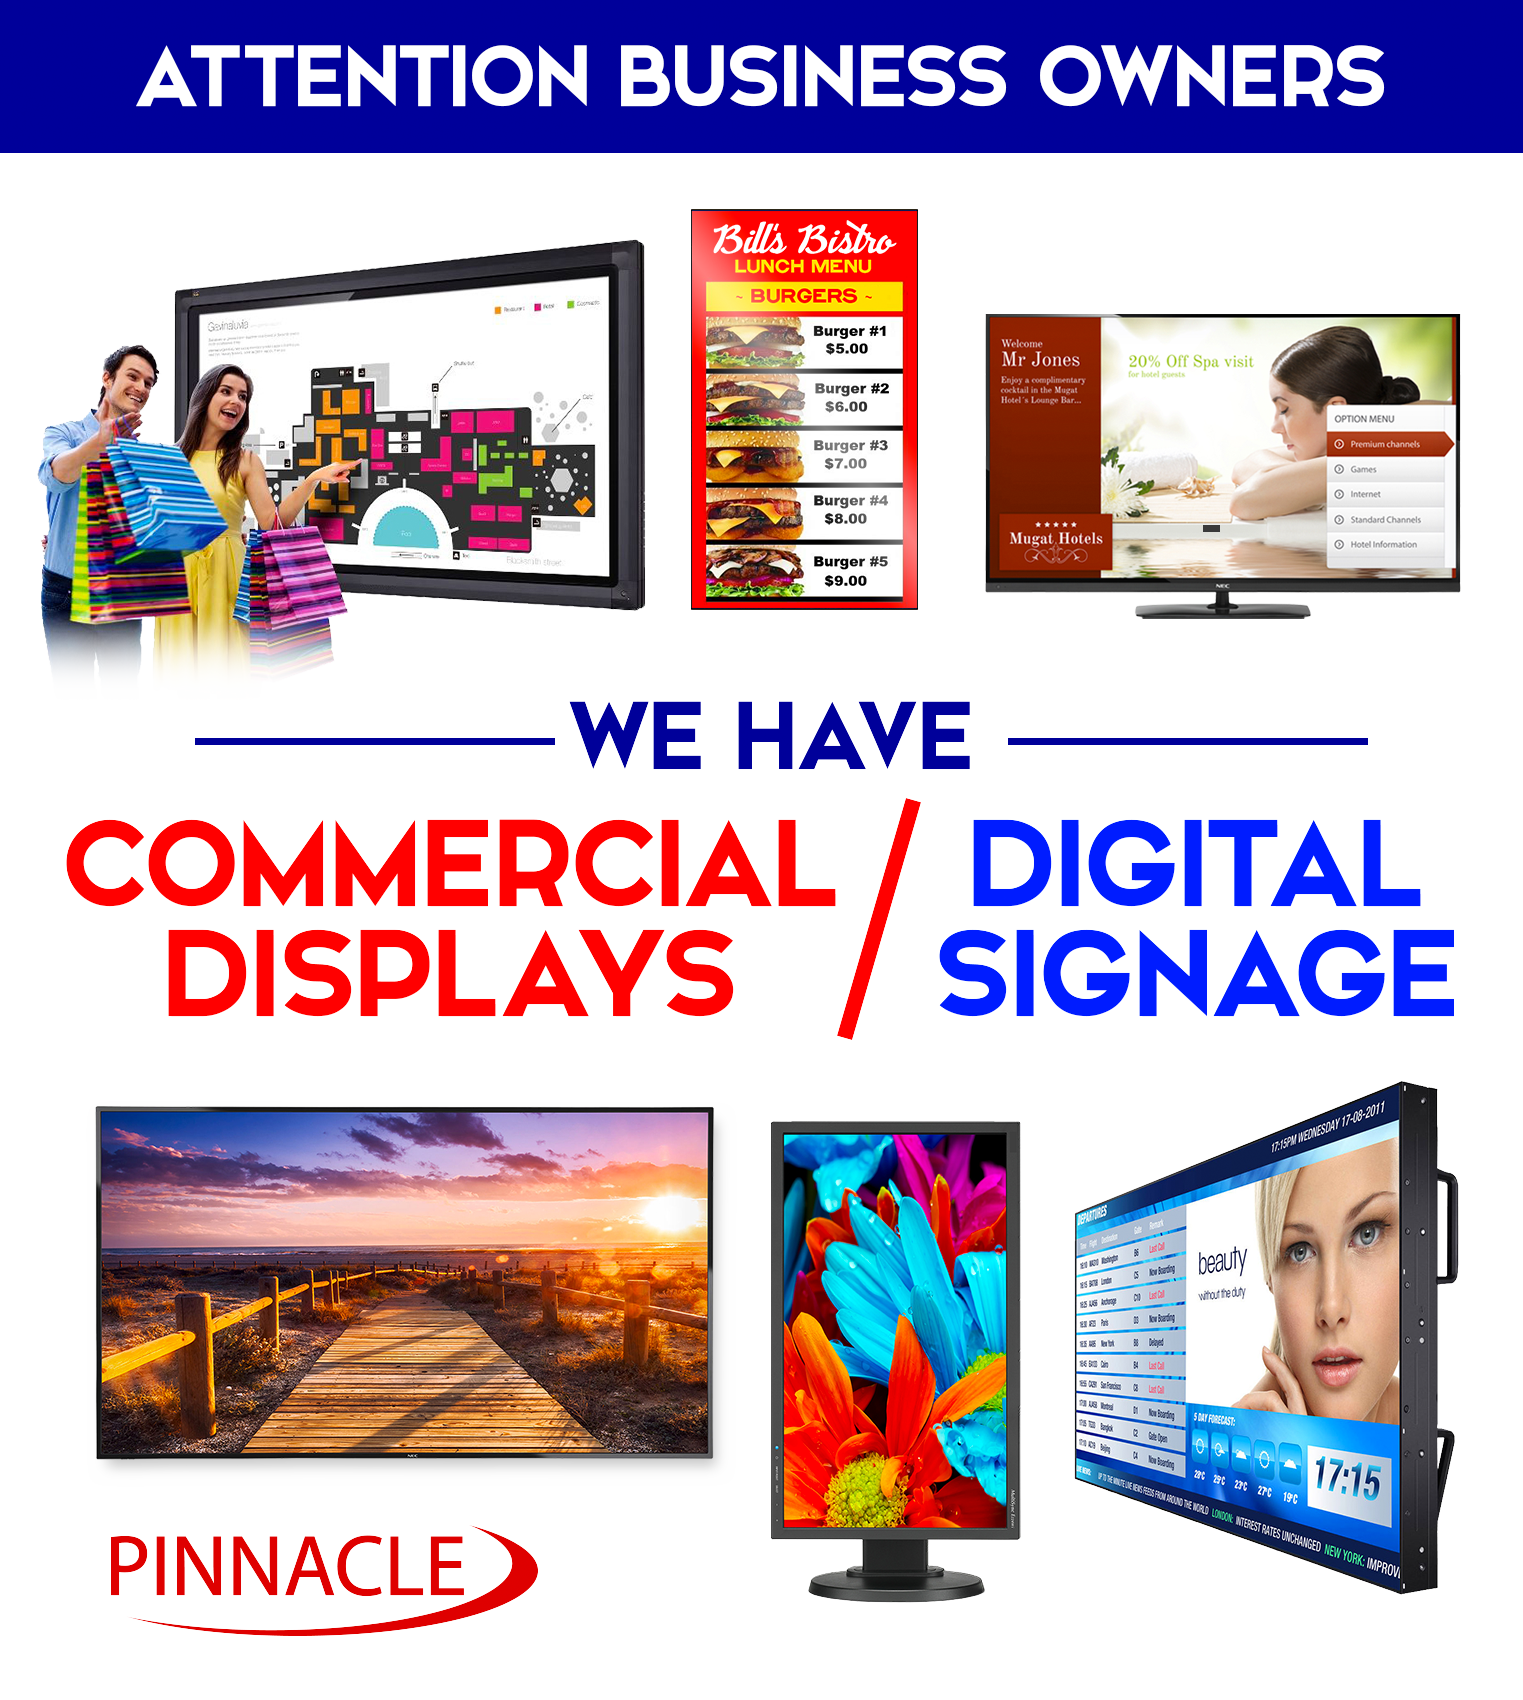 commercial-displays2.png